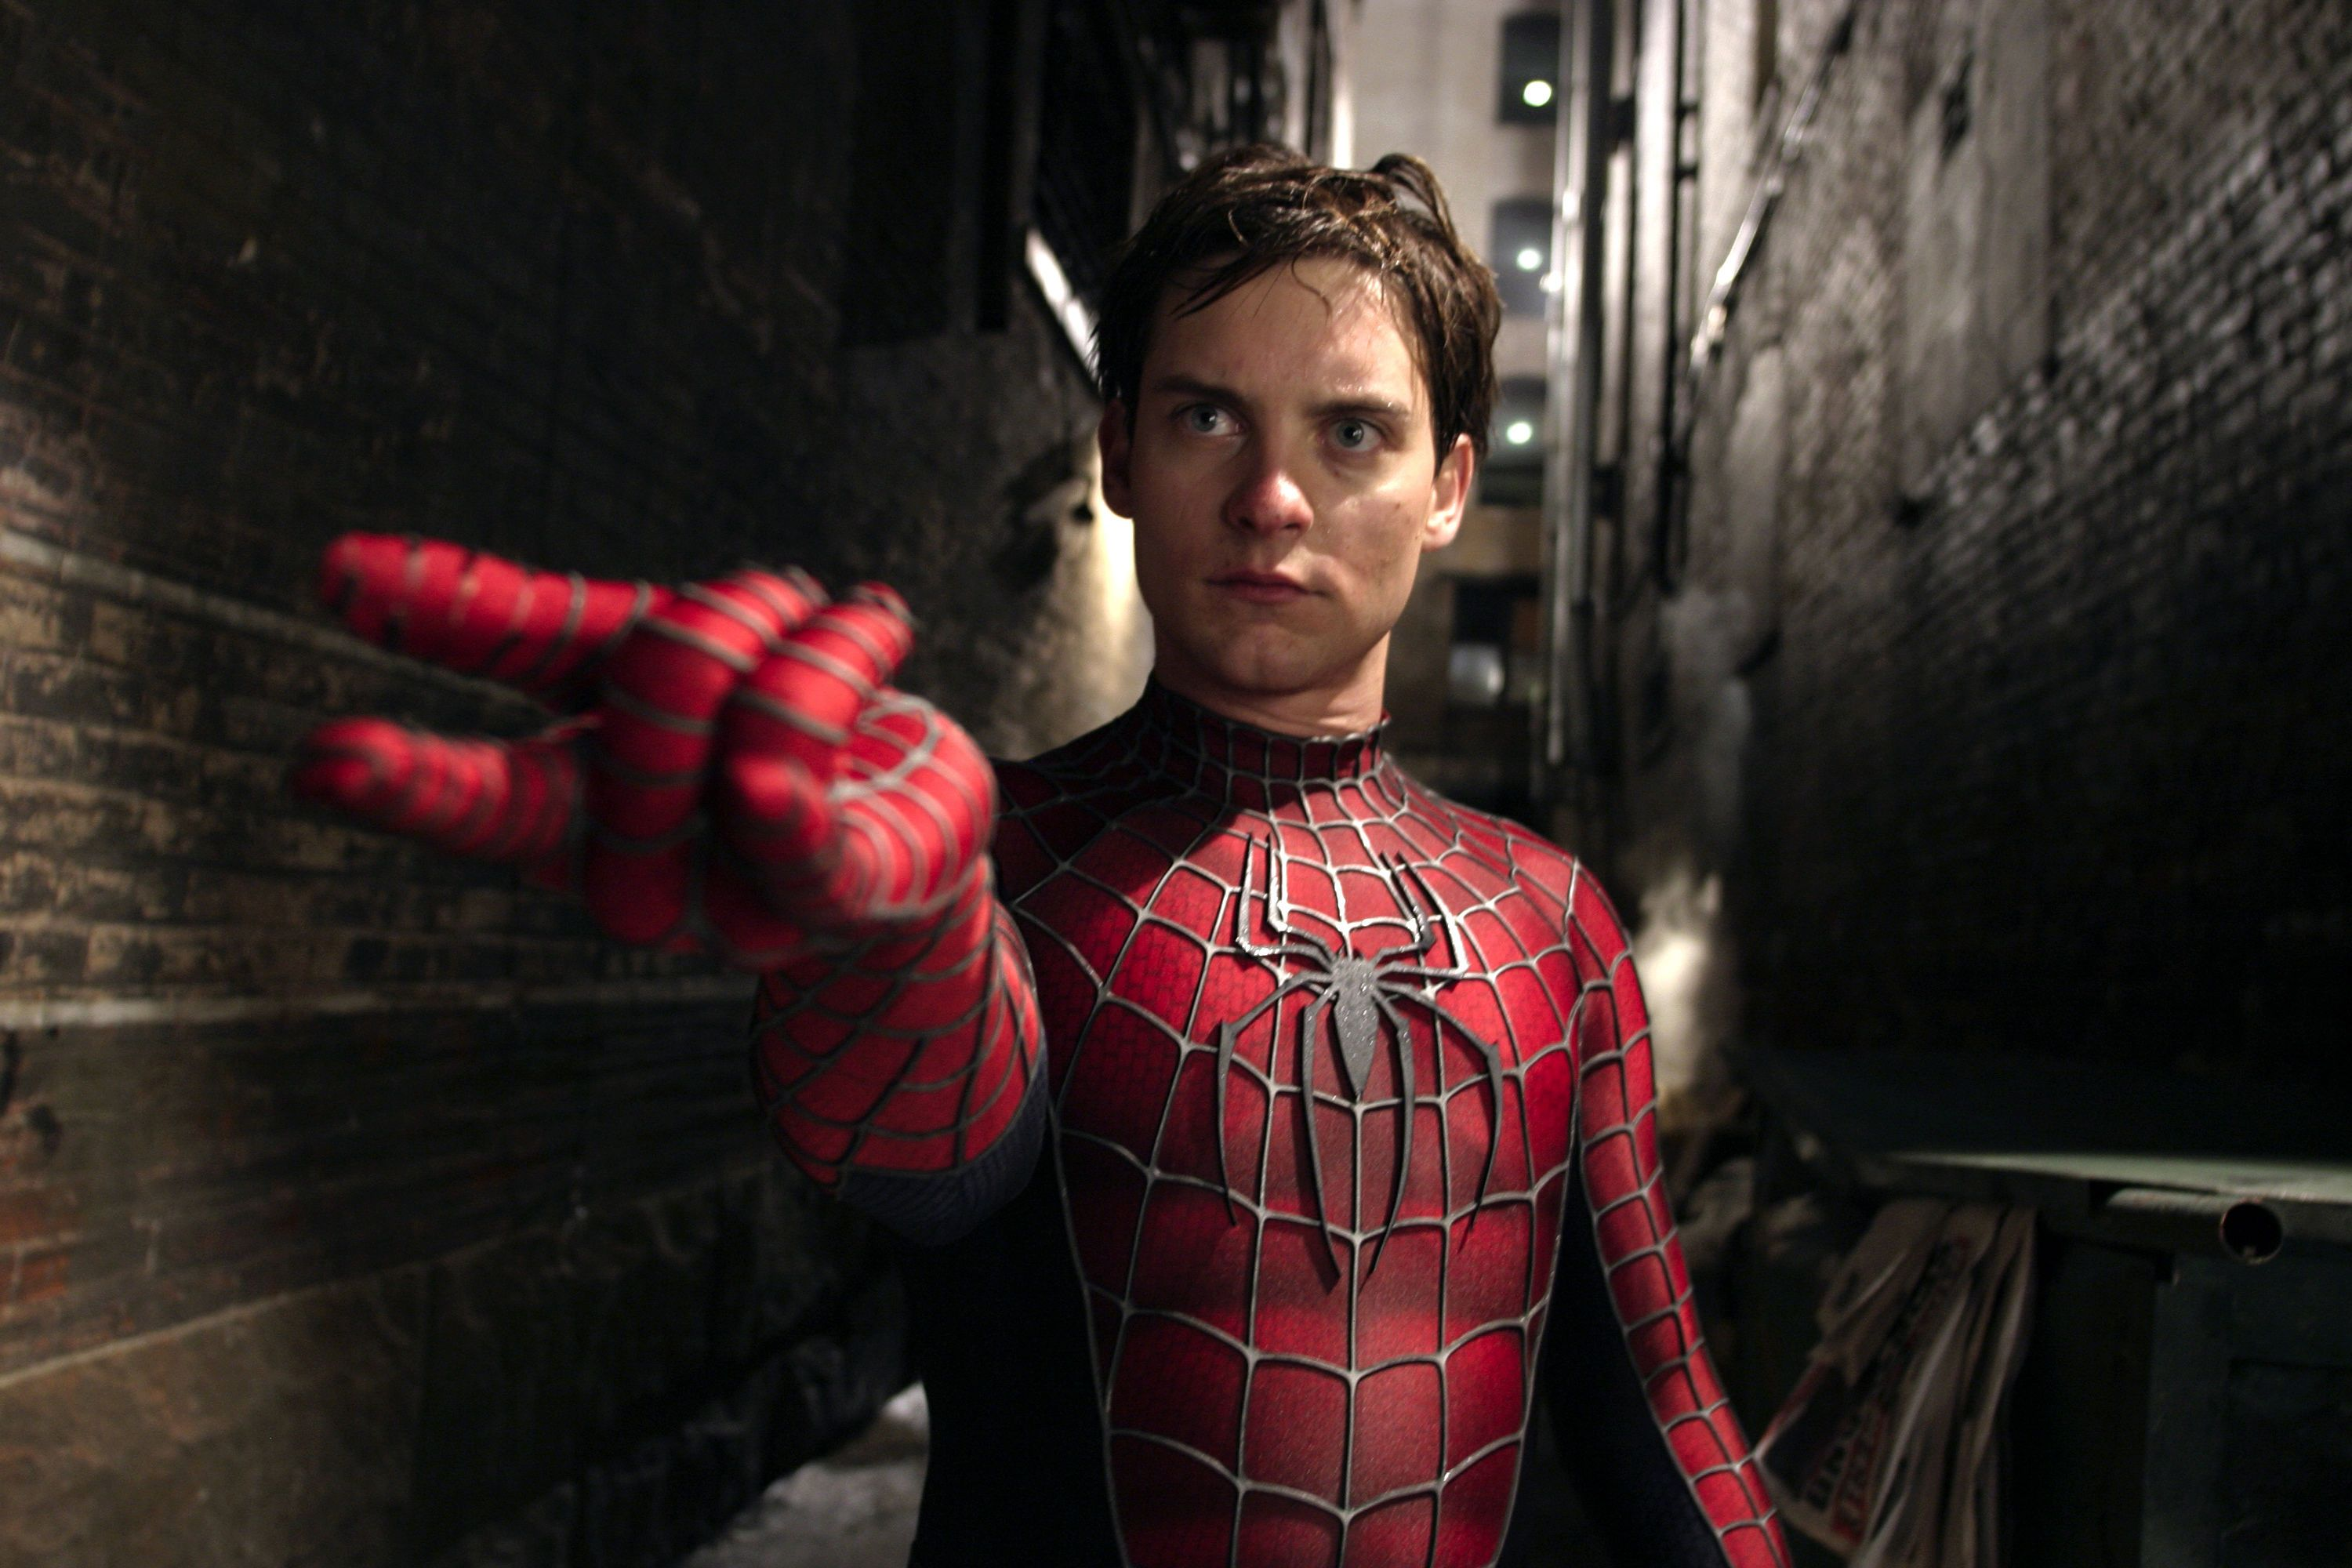 What actually happened to Sam Raimi's Spider-Man 4?